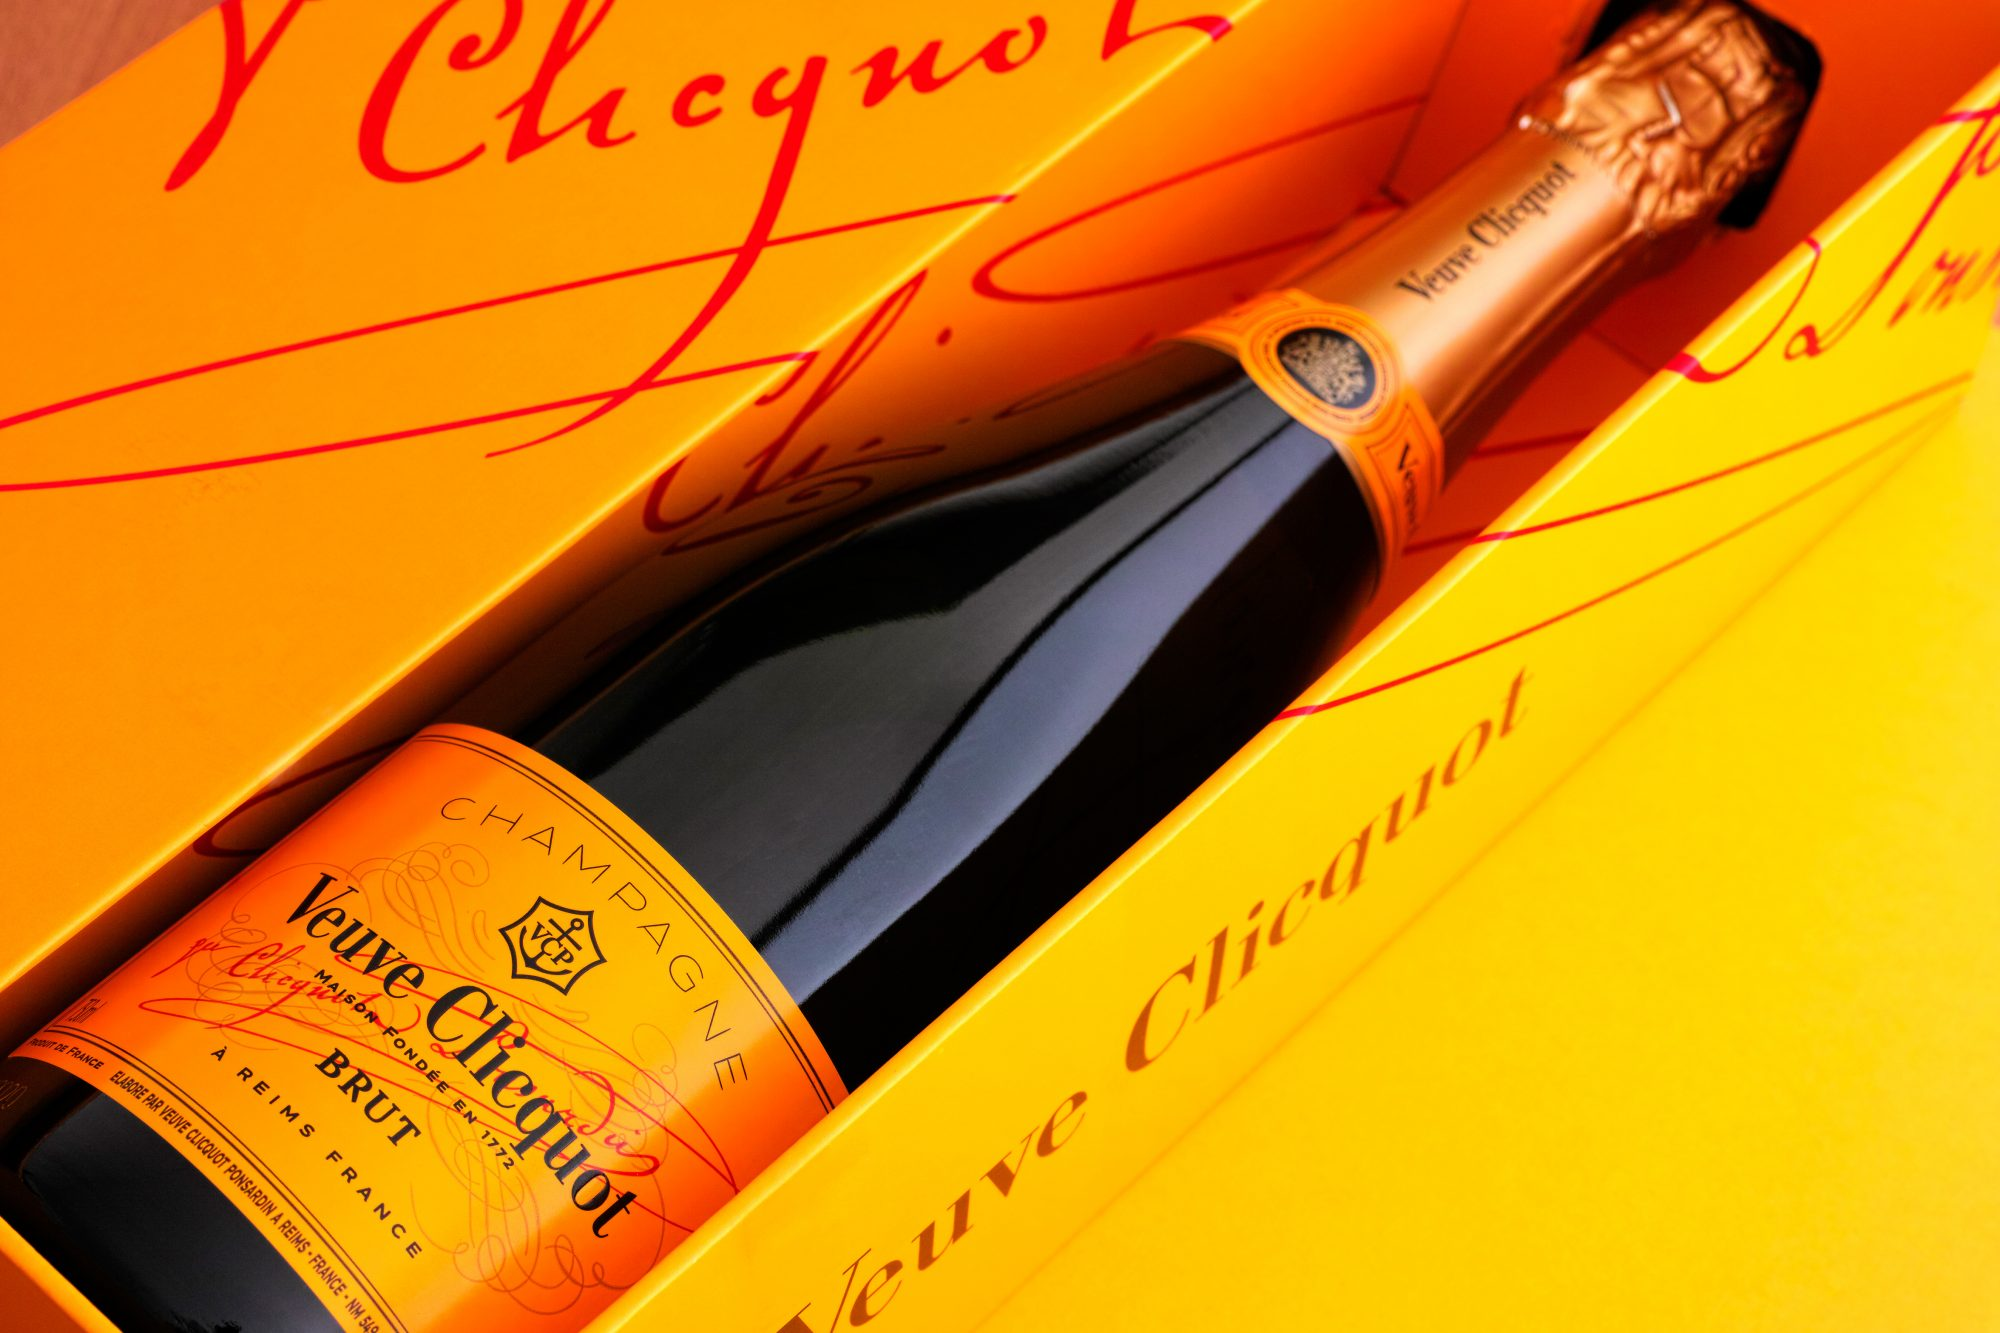 Veuve Clicquot Came Out With Two New Flavors of Their Famous Champagne